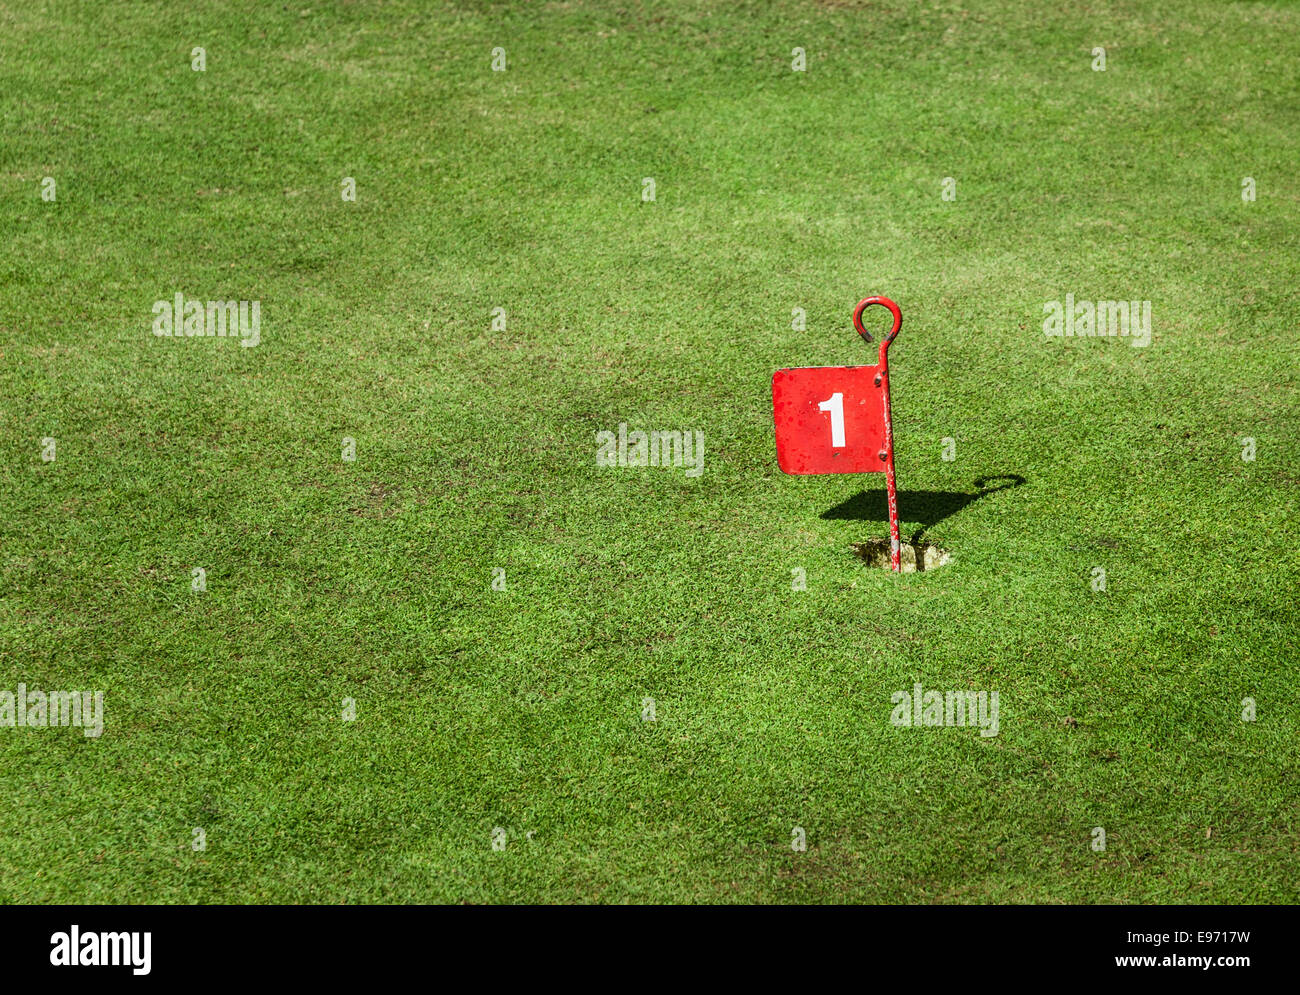 Old tin golf number one cup marker flag on a crazy golf green. - Stock Image